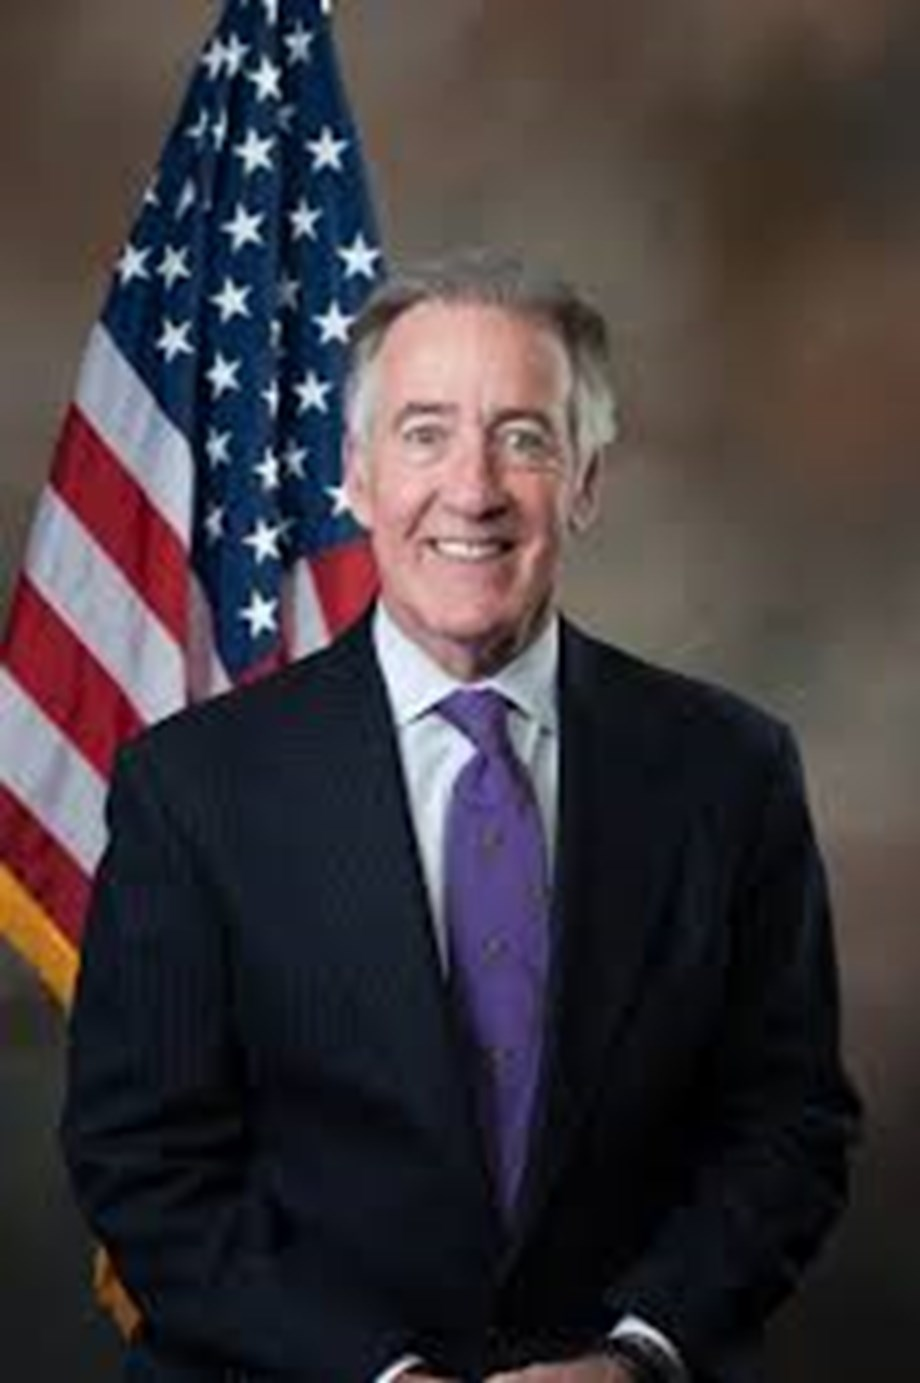 Neal to consult lawyers over Trump tax returns